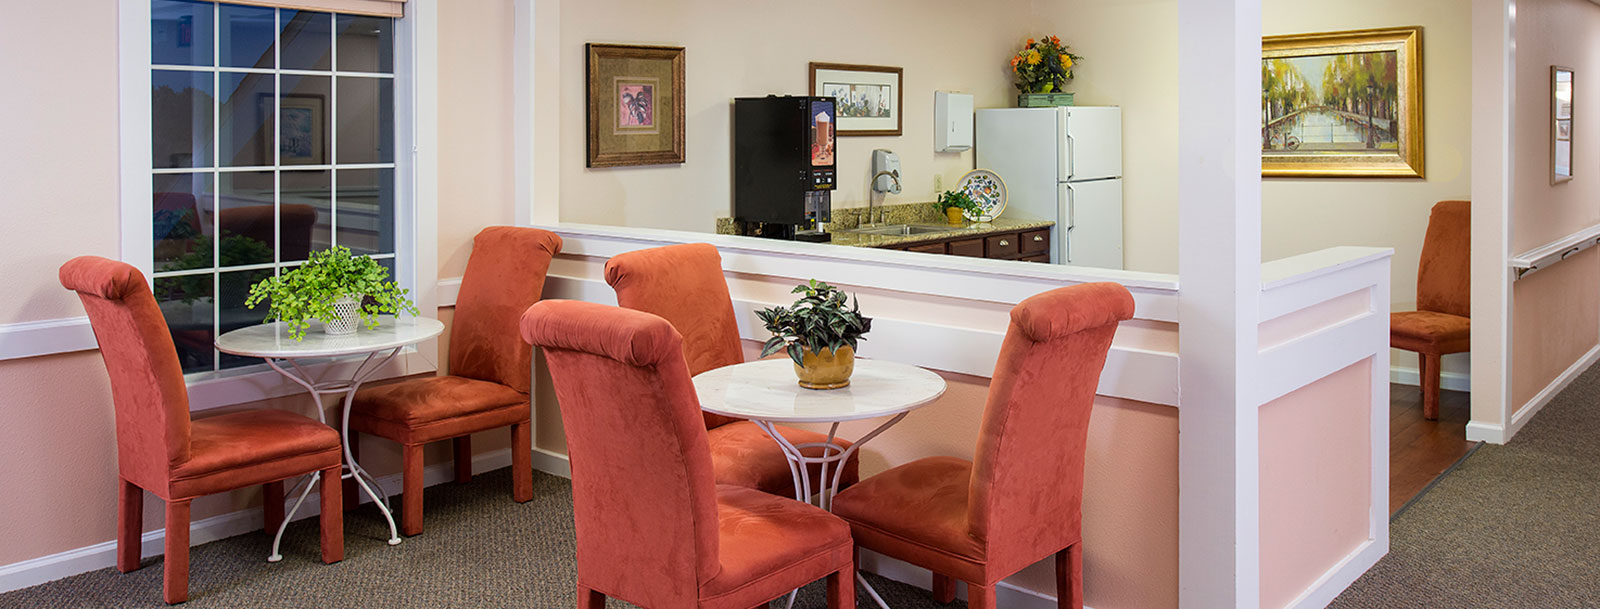 Coffee bar at the senior living in Fort Scott